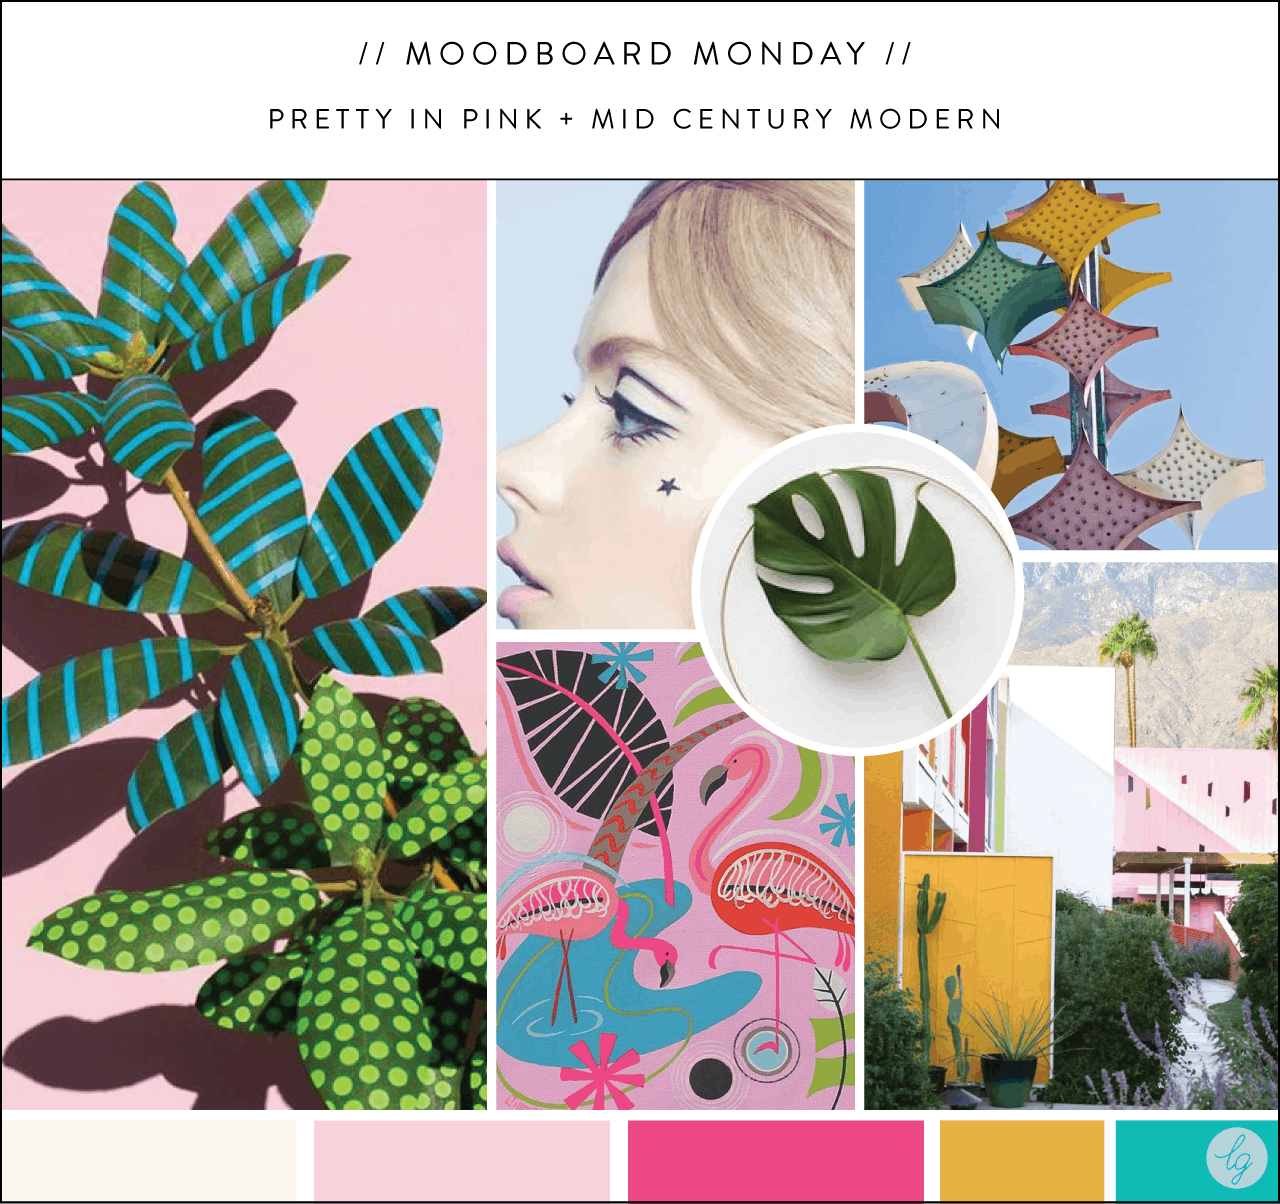 Pretty in Pink + MCM Moodboard | Lindsay Goldner